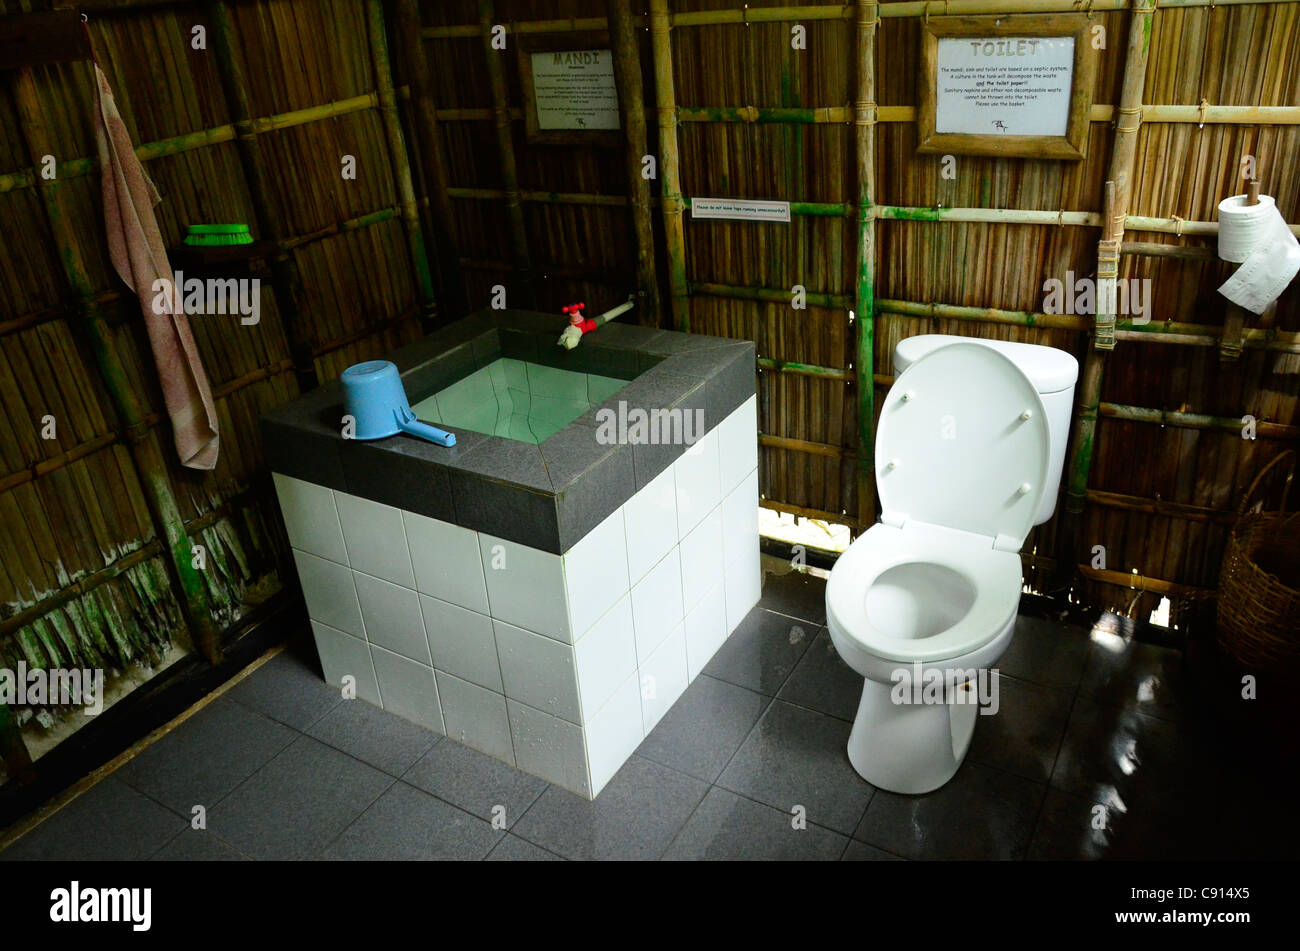 Eco friendly ``Mandi'' or bathroom facility, Kri Eco Resort, Raja Ampat island of Western Papua in the Pacific - Stock Image